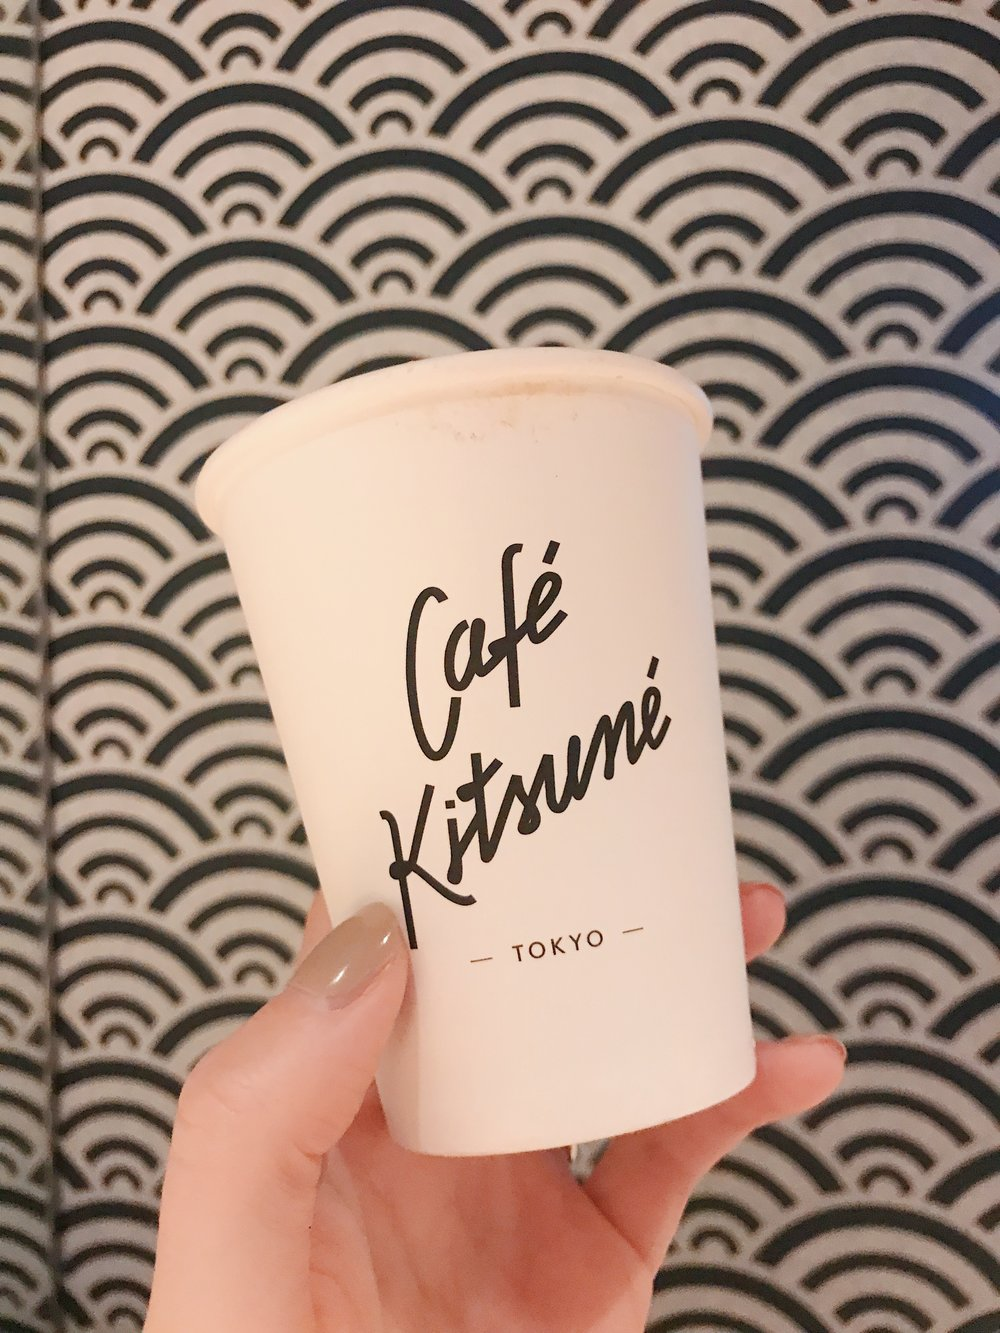 Café Kitsuné - Café Kitsuné makes my favorite hot chocolate in Paris, so I knew I needed to try out their Tokyo outpost. I was expecting a cookie cutter version of their French location, but was pleasantly surprised to find the interiors taking cues from Japanese design, from the wooden details to the wallpaper. And yep, the hot chocolate is just as good—so good that I forgot to take a photo before I finished it, so here's me, holding an empty cup!3 Chome-17-1 Minamiaoyama, Minato City, Tokyo 107-0062, Japan